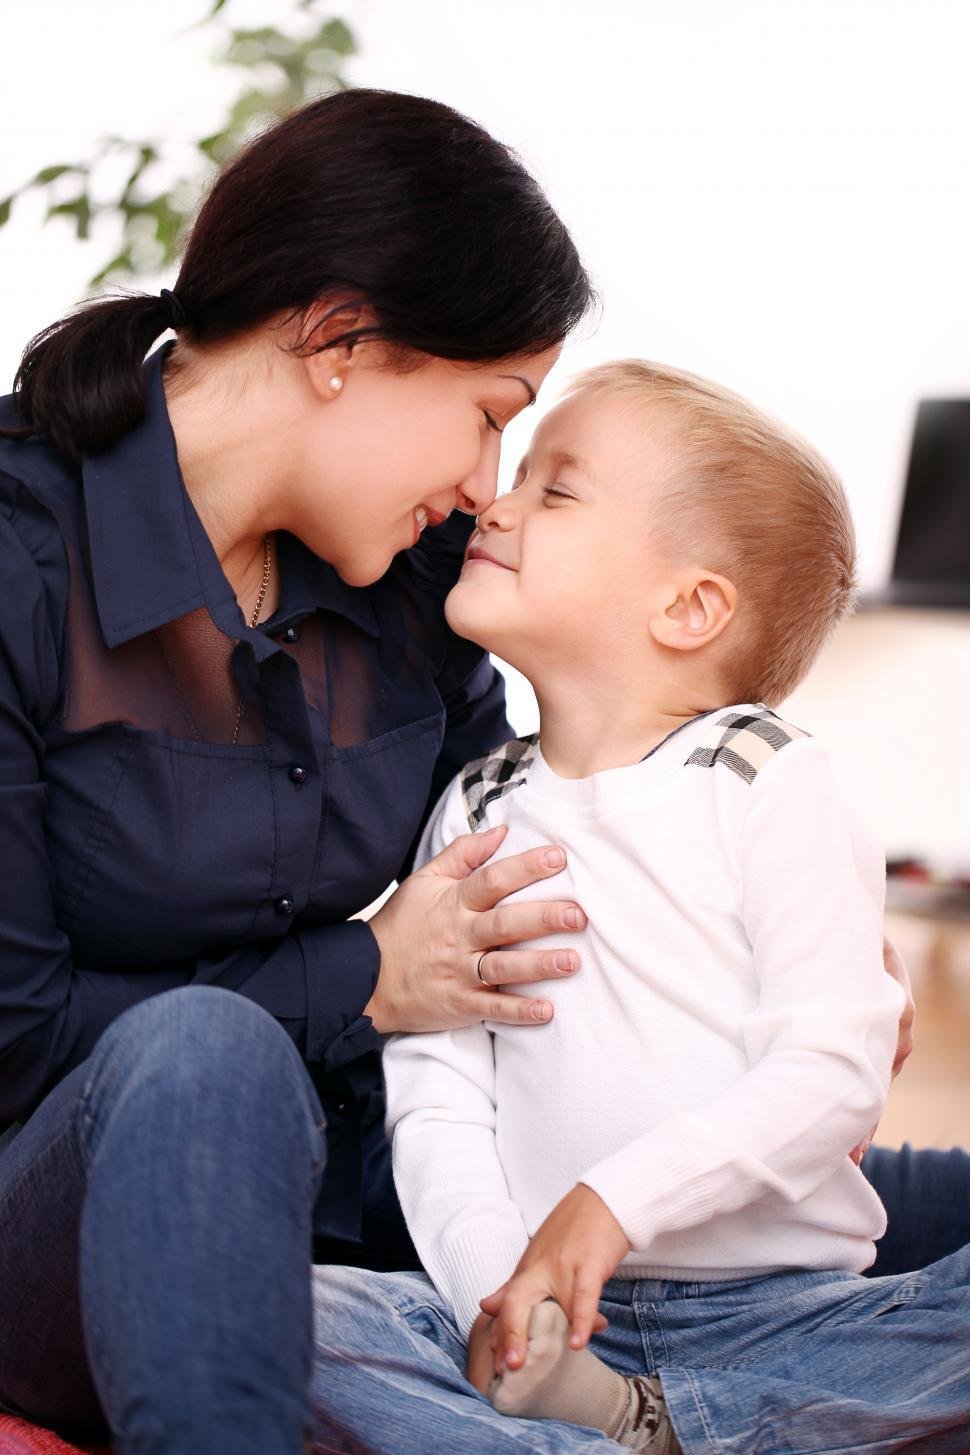 Download Free Stock Photo of Mother affectionately rubs noses with her child